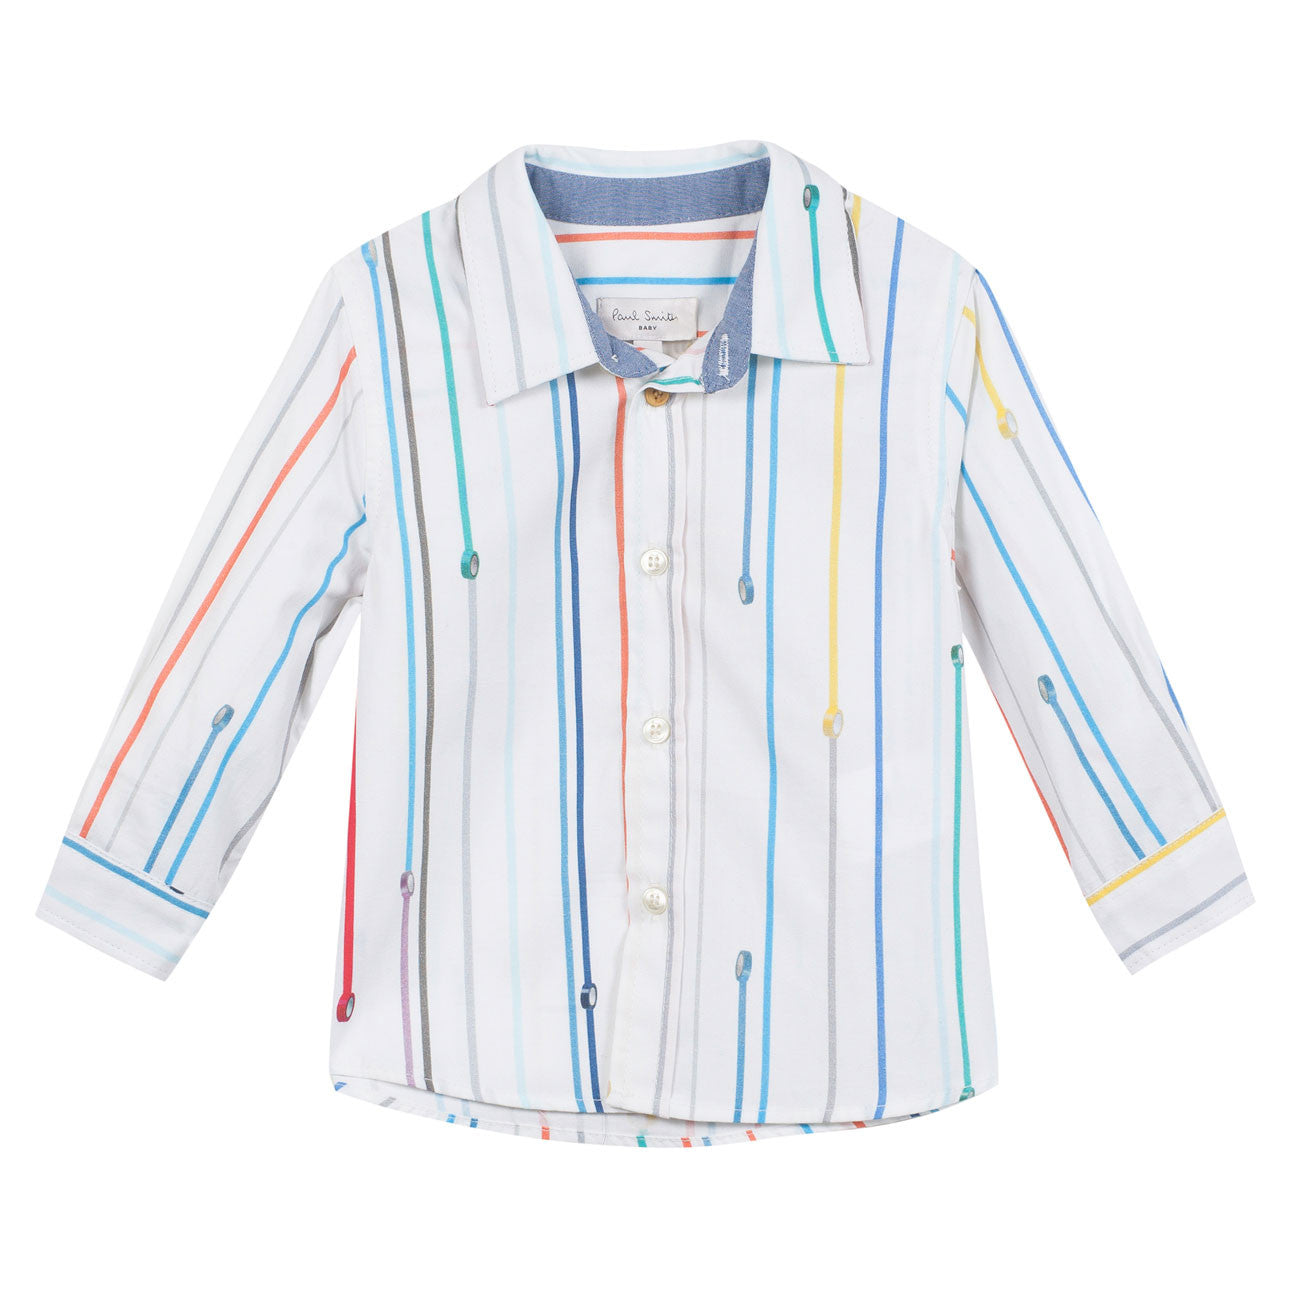 Paul Smith Baby Modern Stripe - Ladida